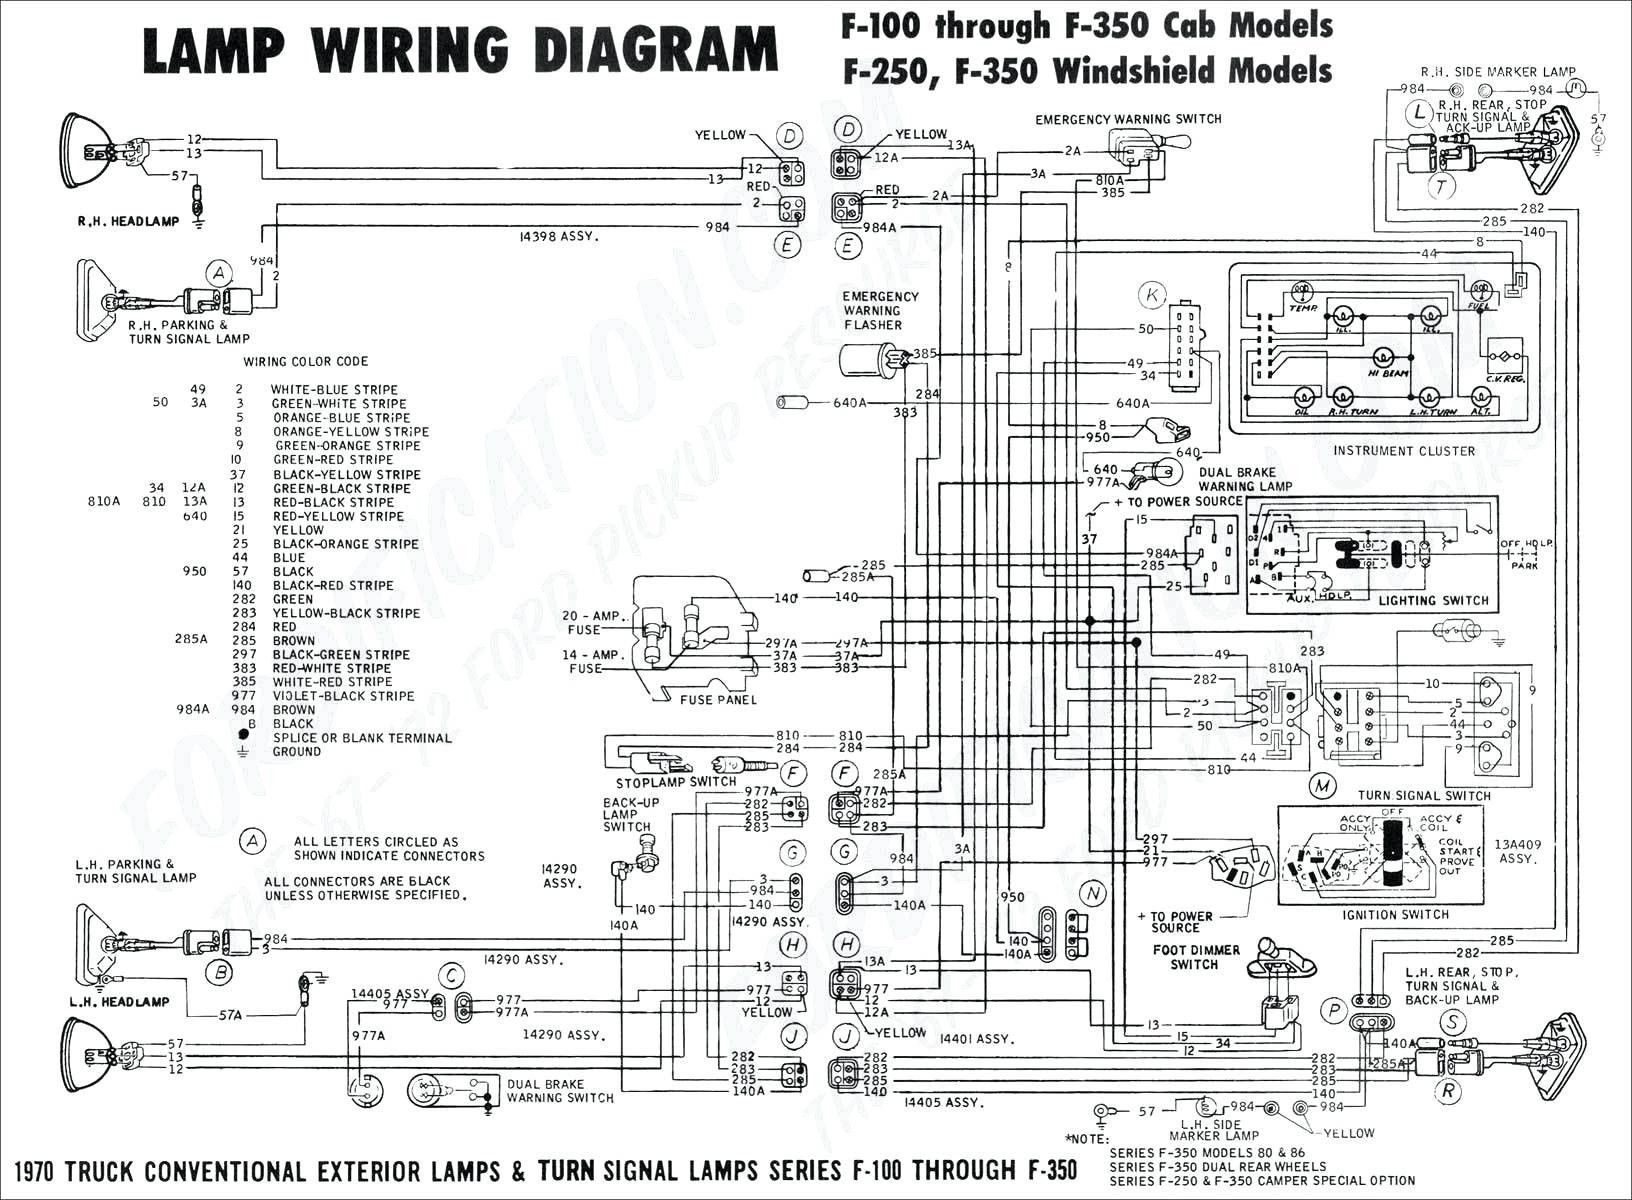 Best Of Kenworth Wiring Diagram | Trailer wiring diagram, Electrical wiring  diagram, Circuit diagram | 1998 Kenworth Wiring Diagram |  | Pinterest